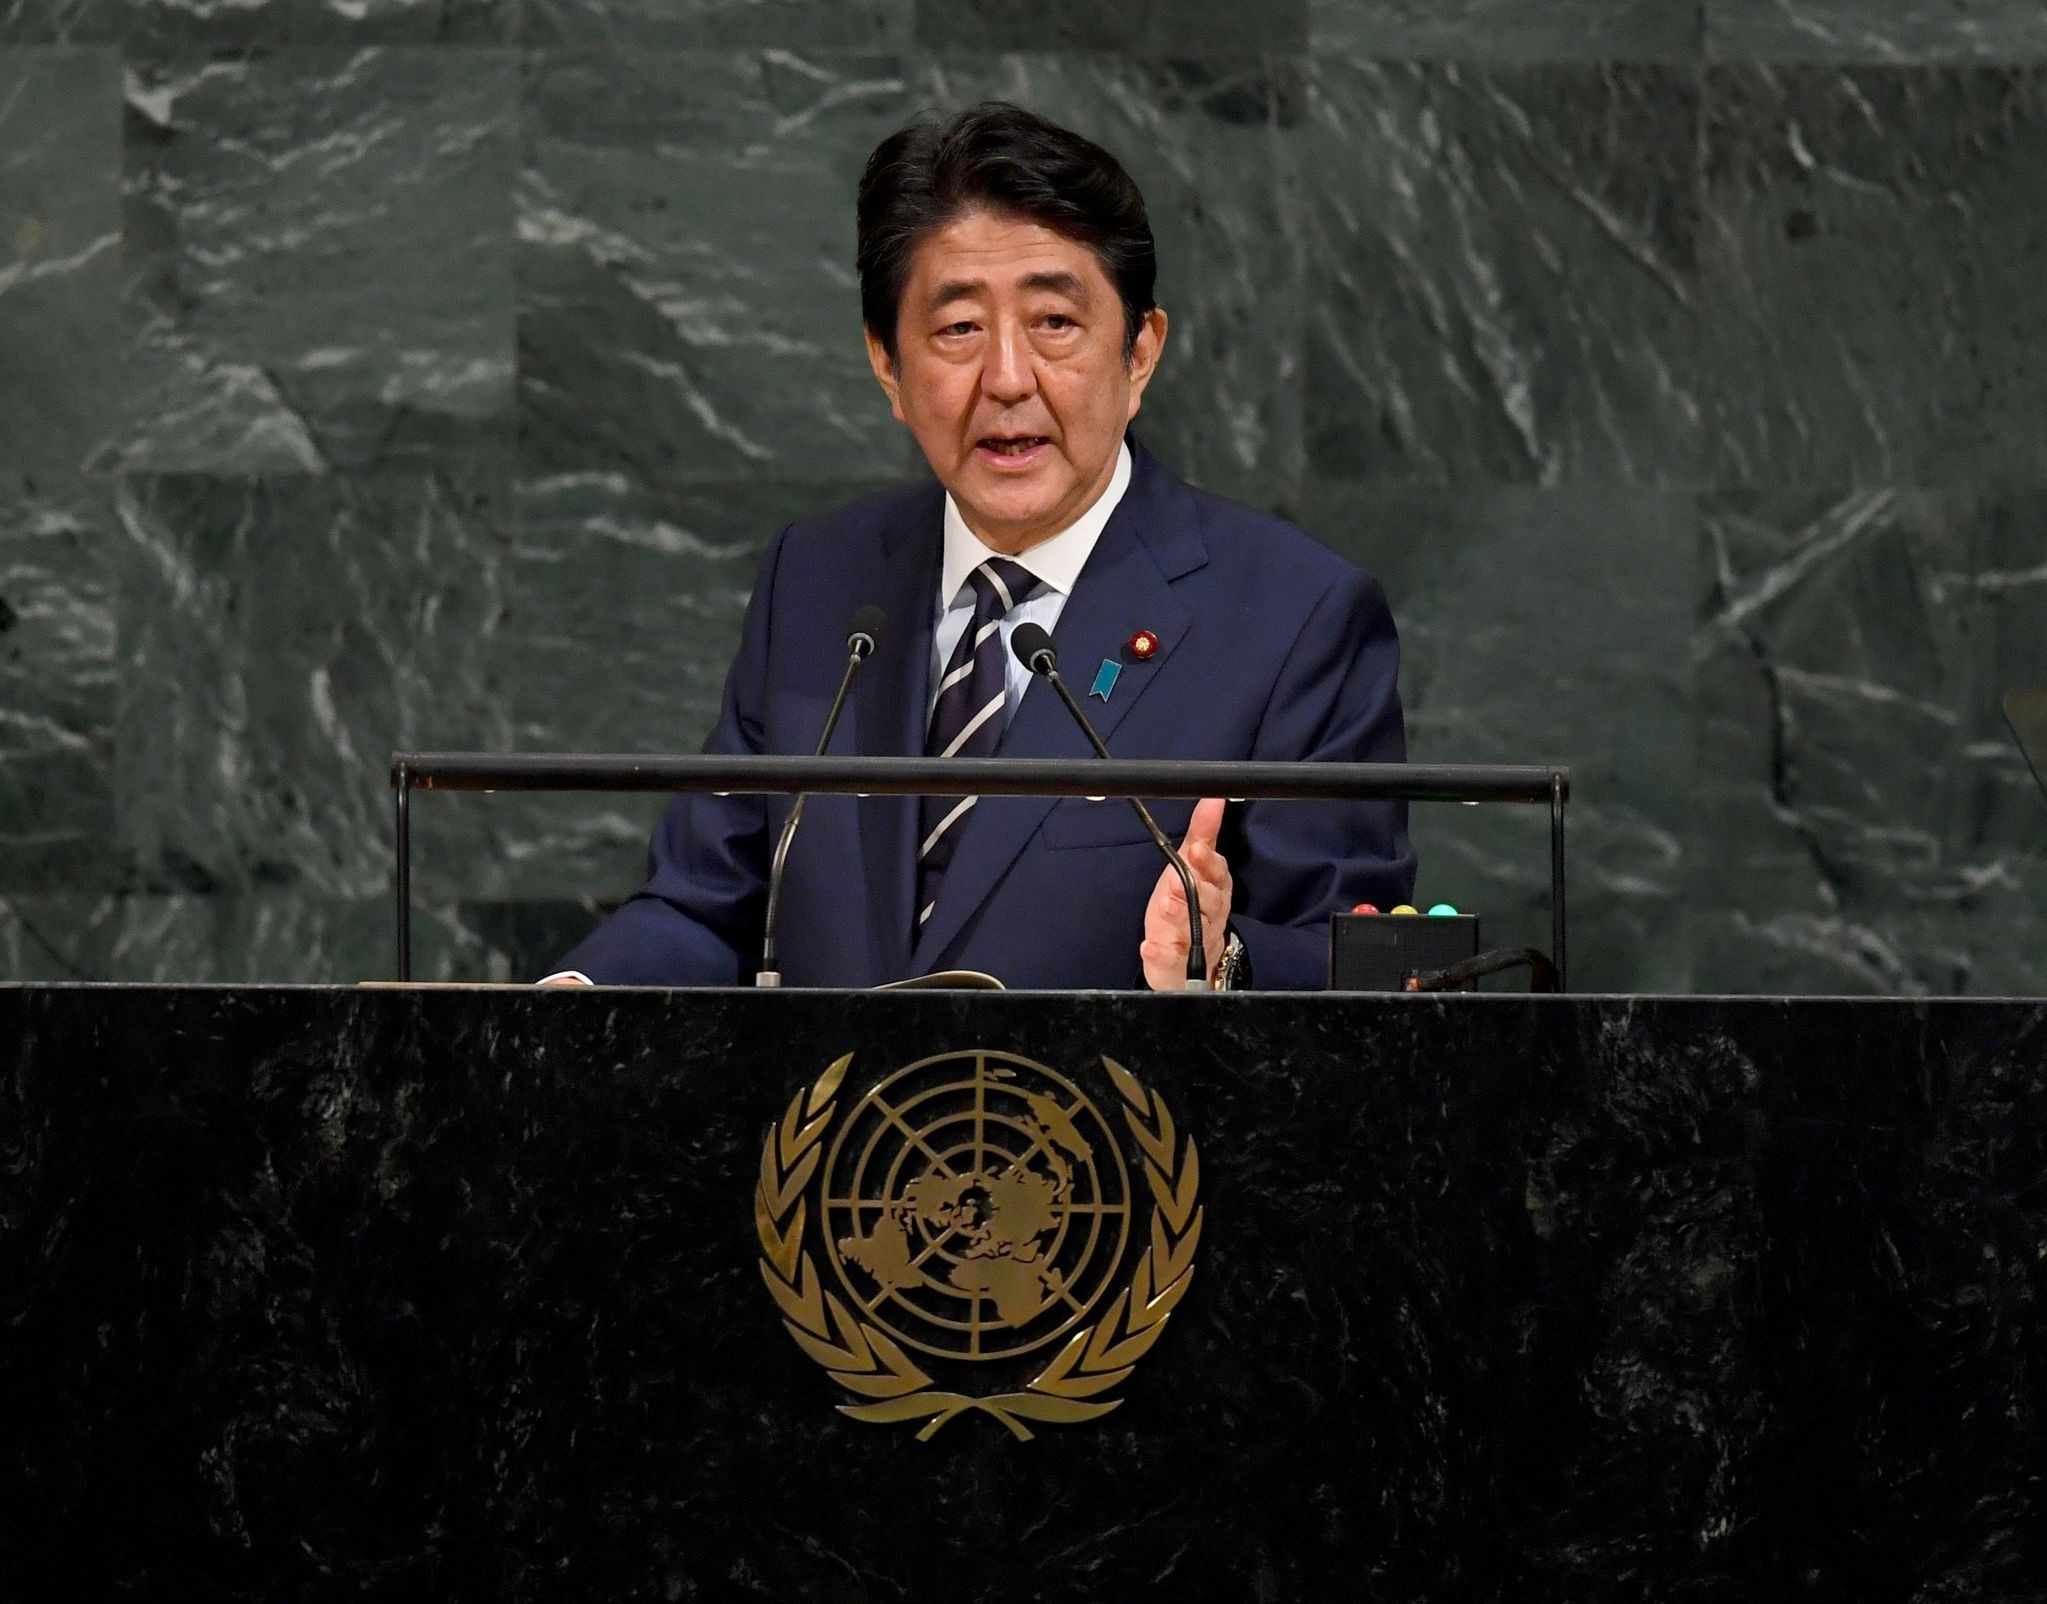 Shinzo Abe, Prime Minister of Japan, addresses the 72nd UN General Assembly on September 20, 2017, at the United Nations in New York. (AFP Photo)